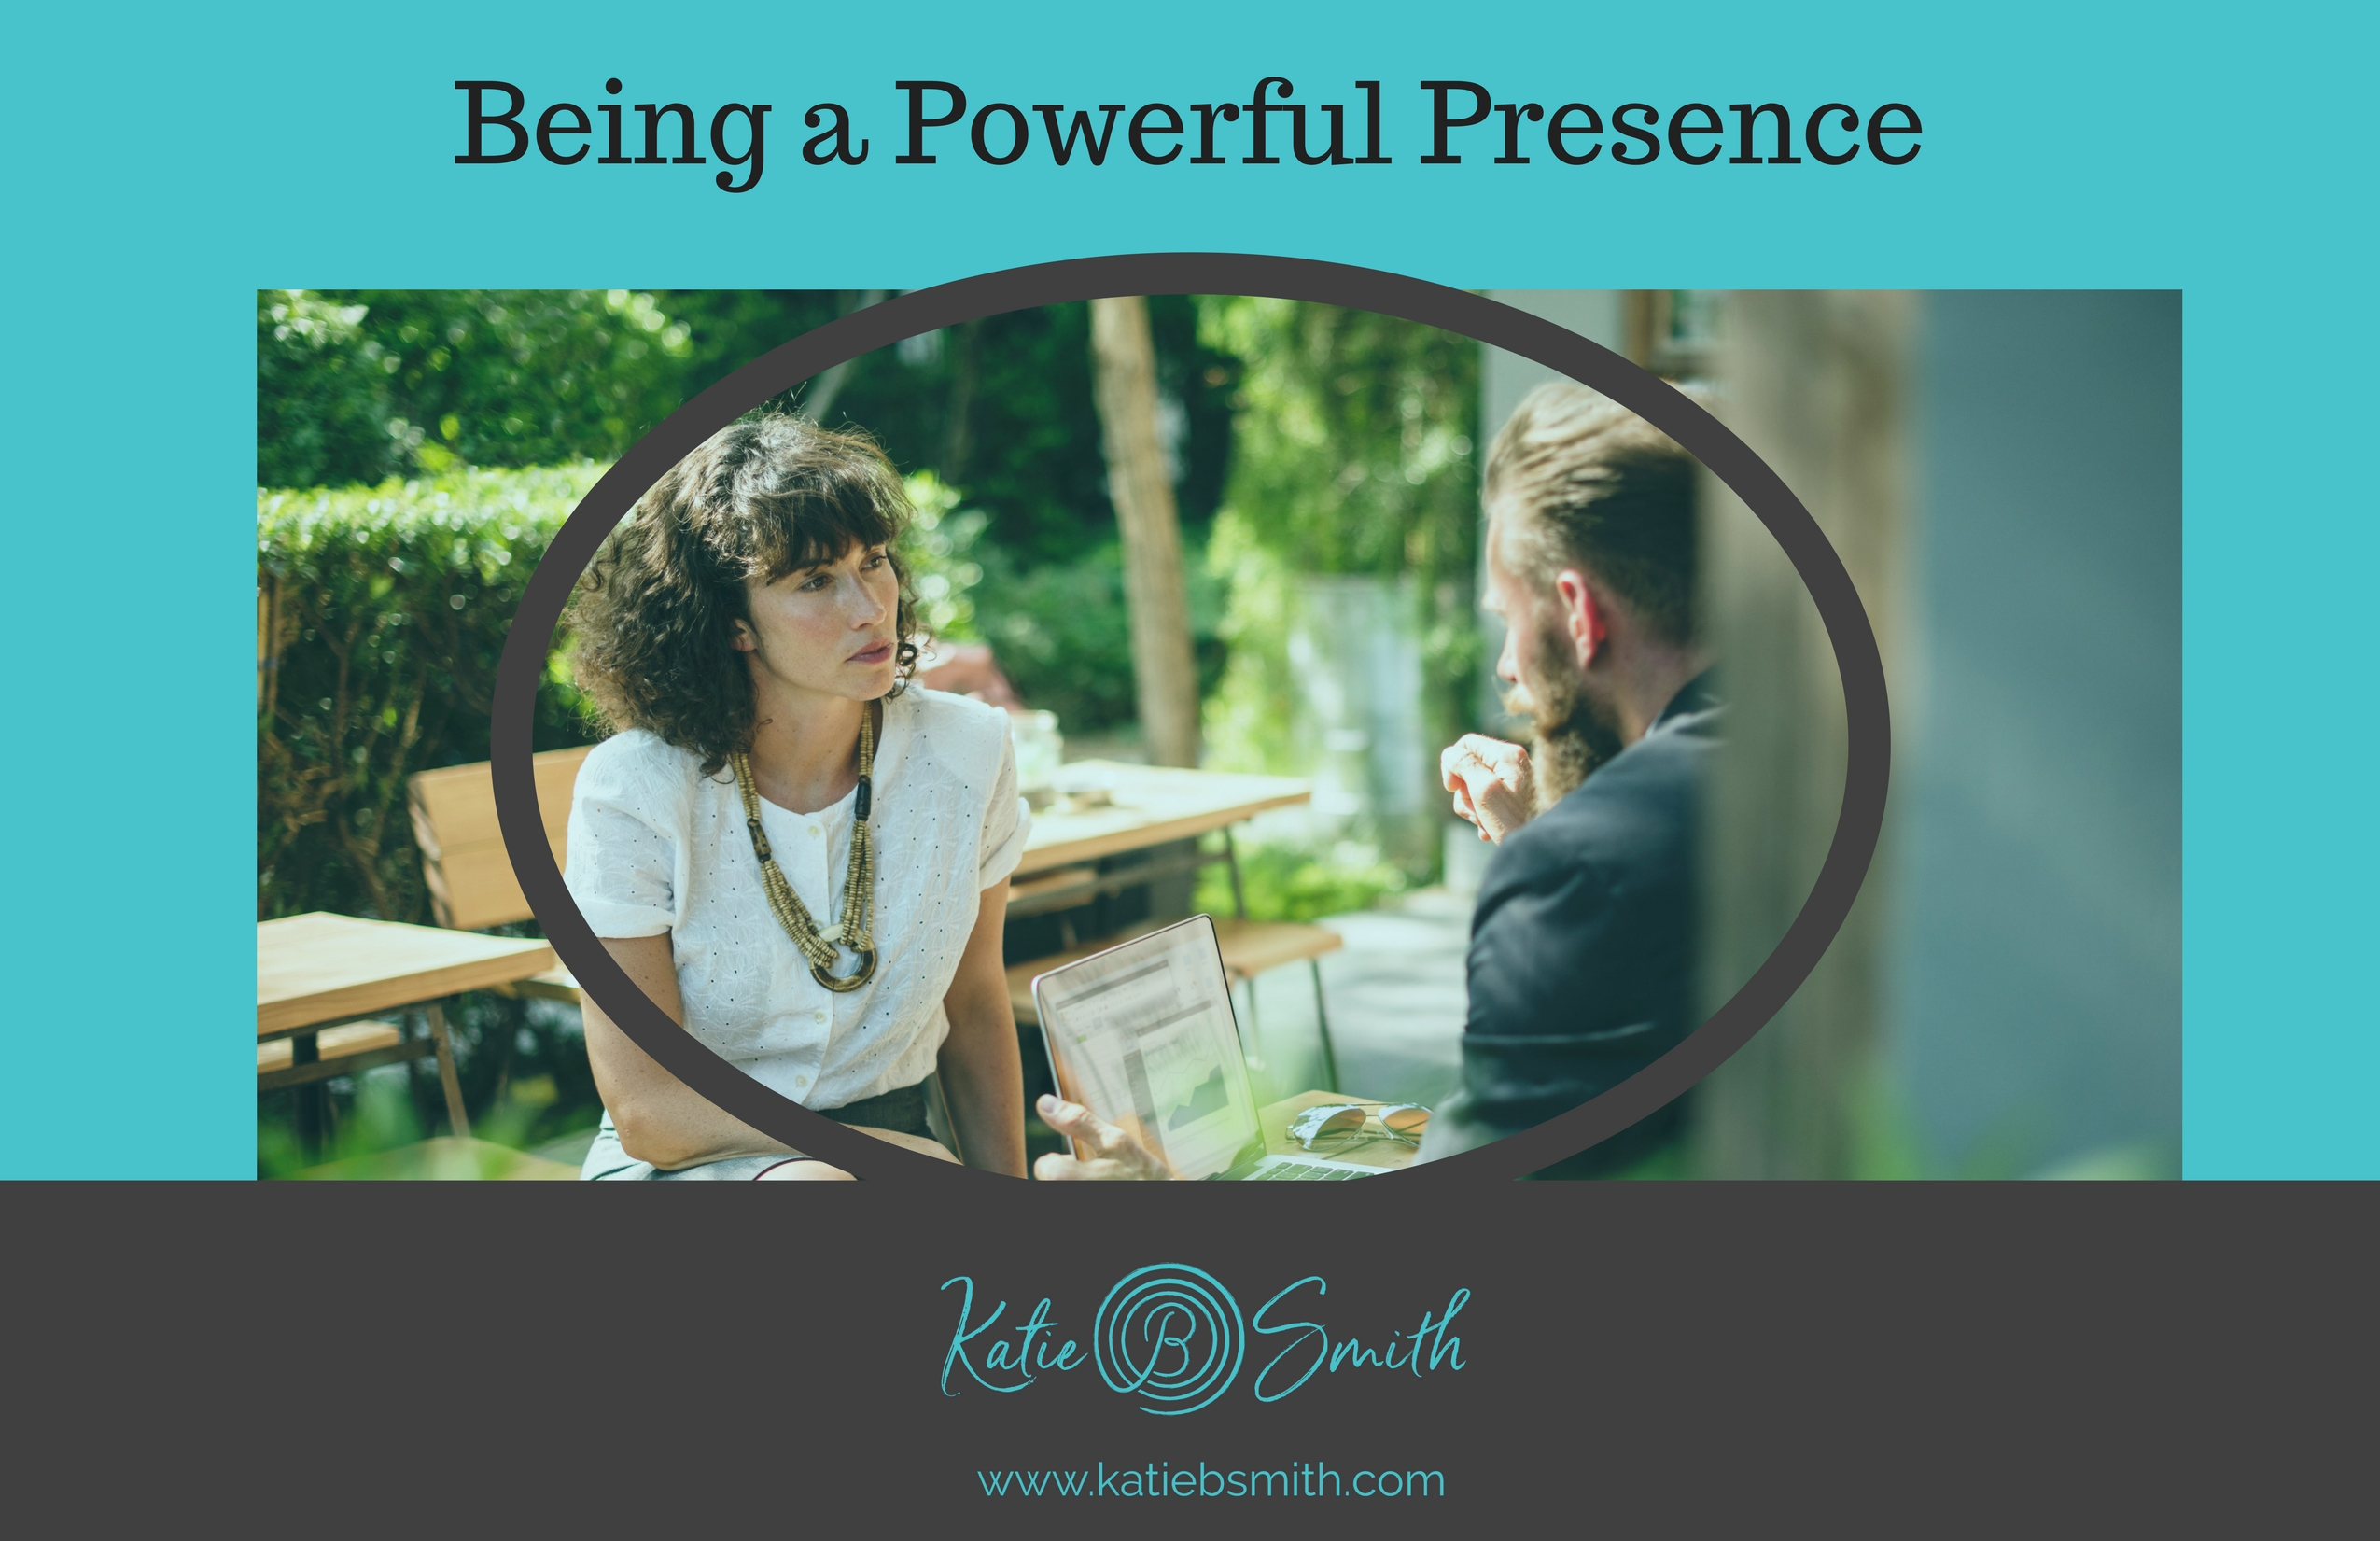 Being a Powerful Presence